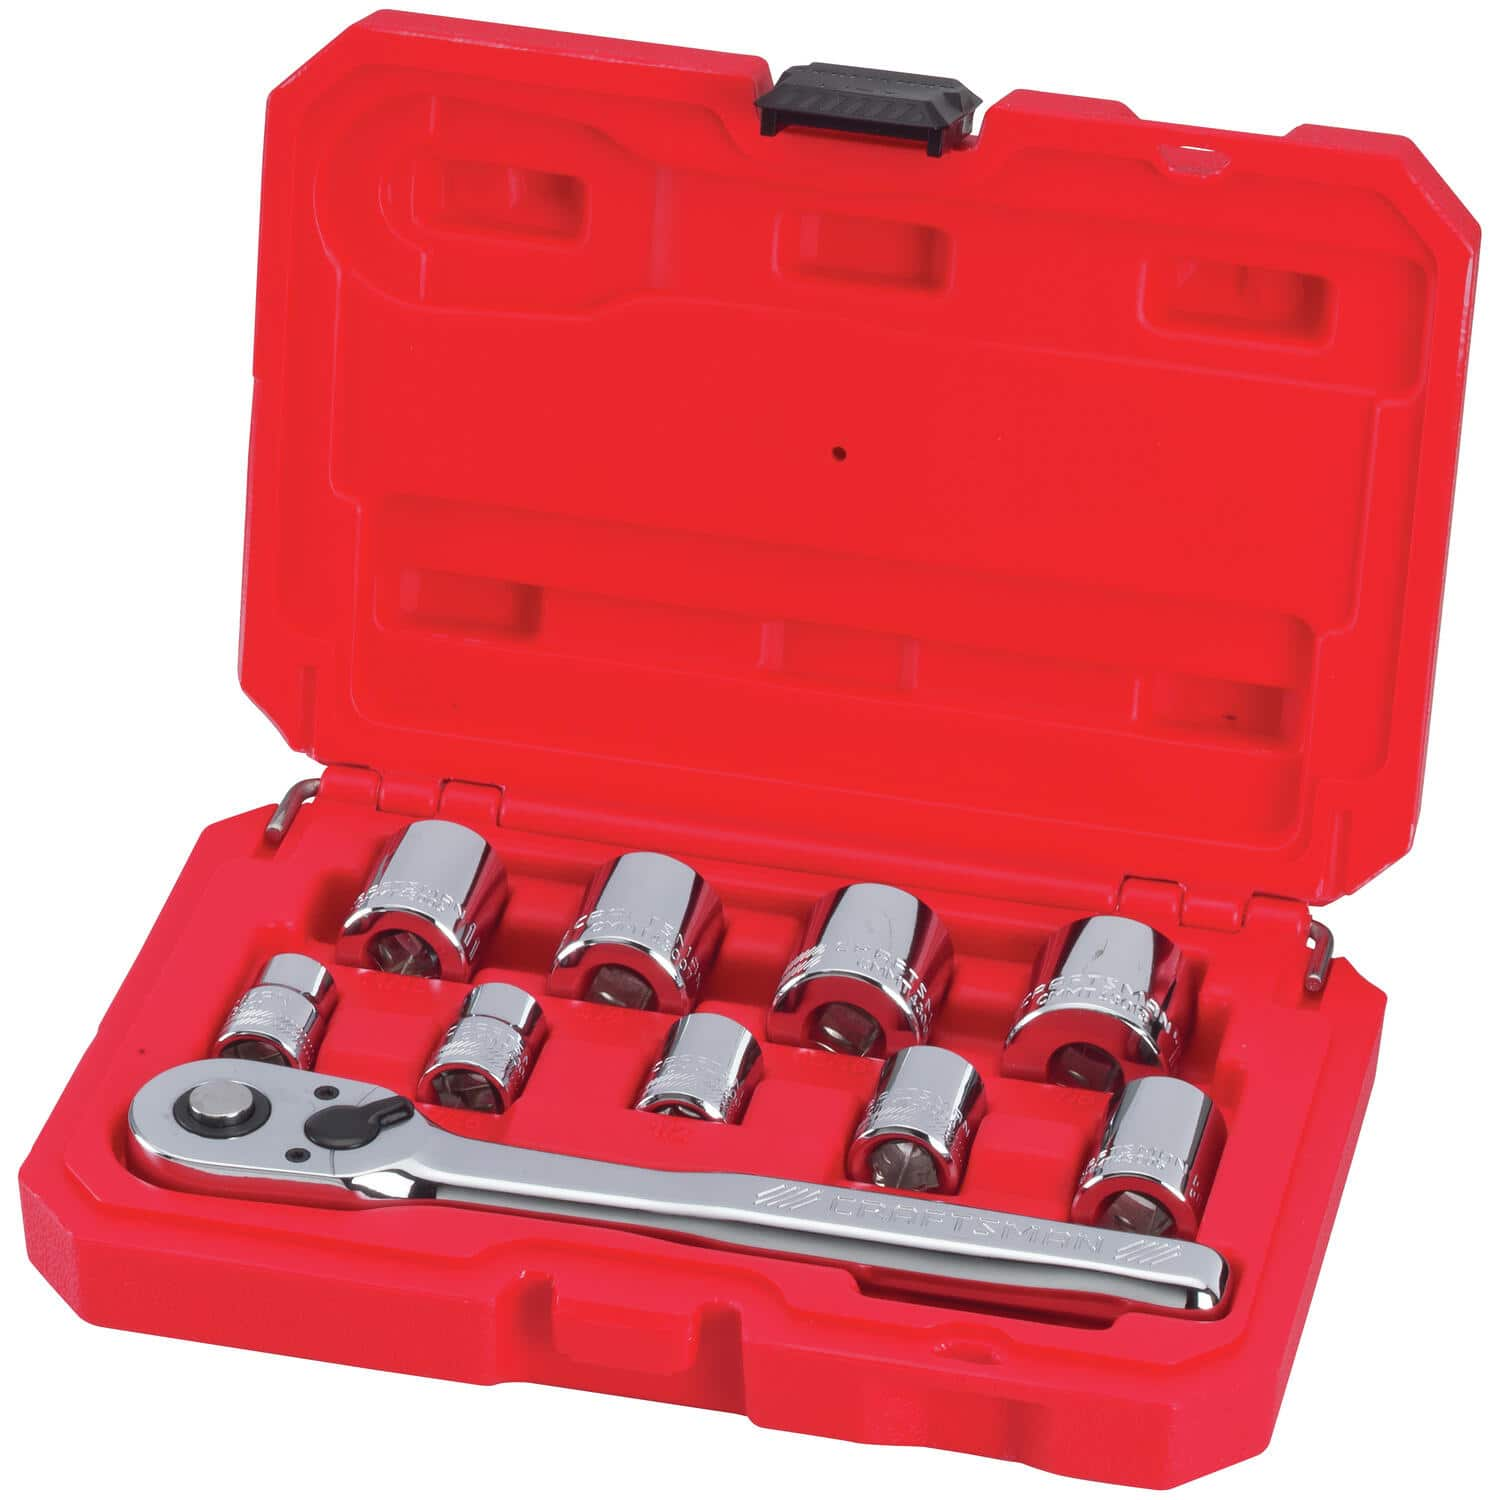 Craftsman 10-Piece 3/8-in Drive SAE Mechanics Tool Set $9.99 at Lowes